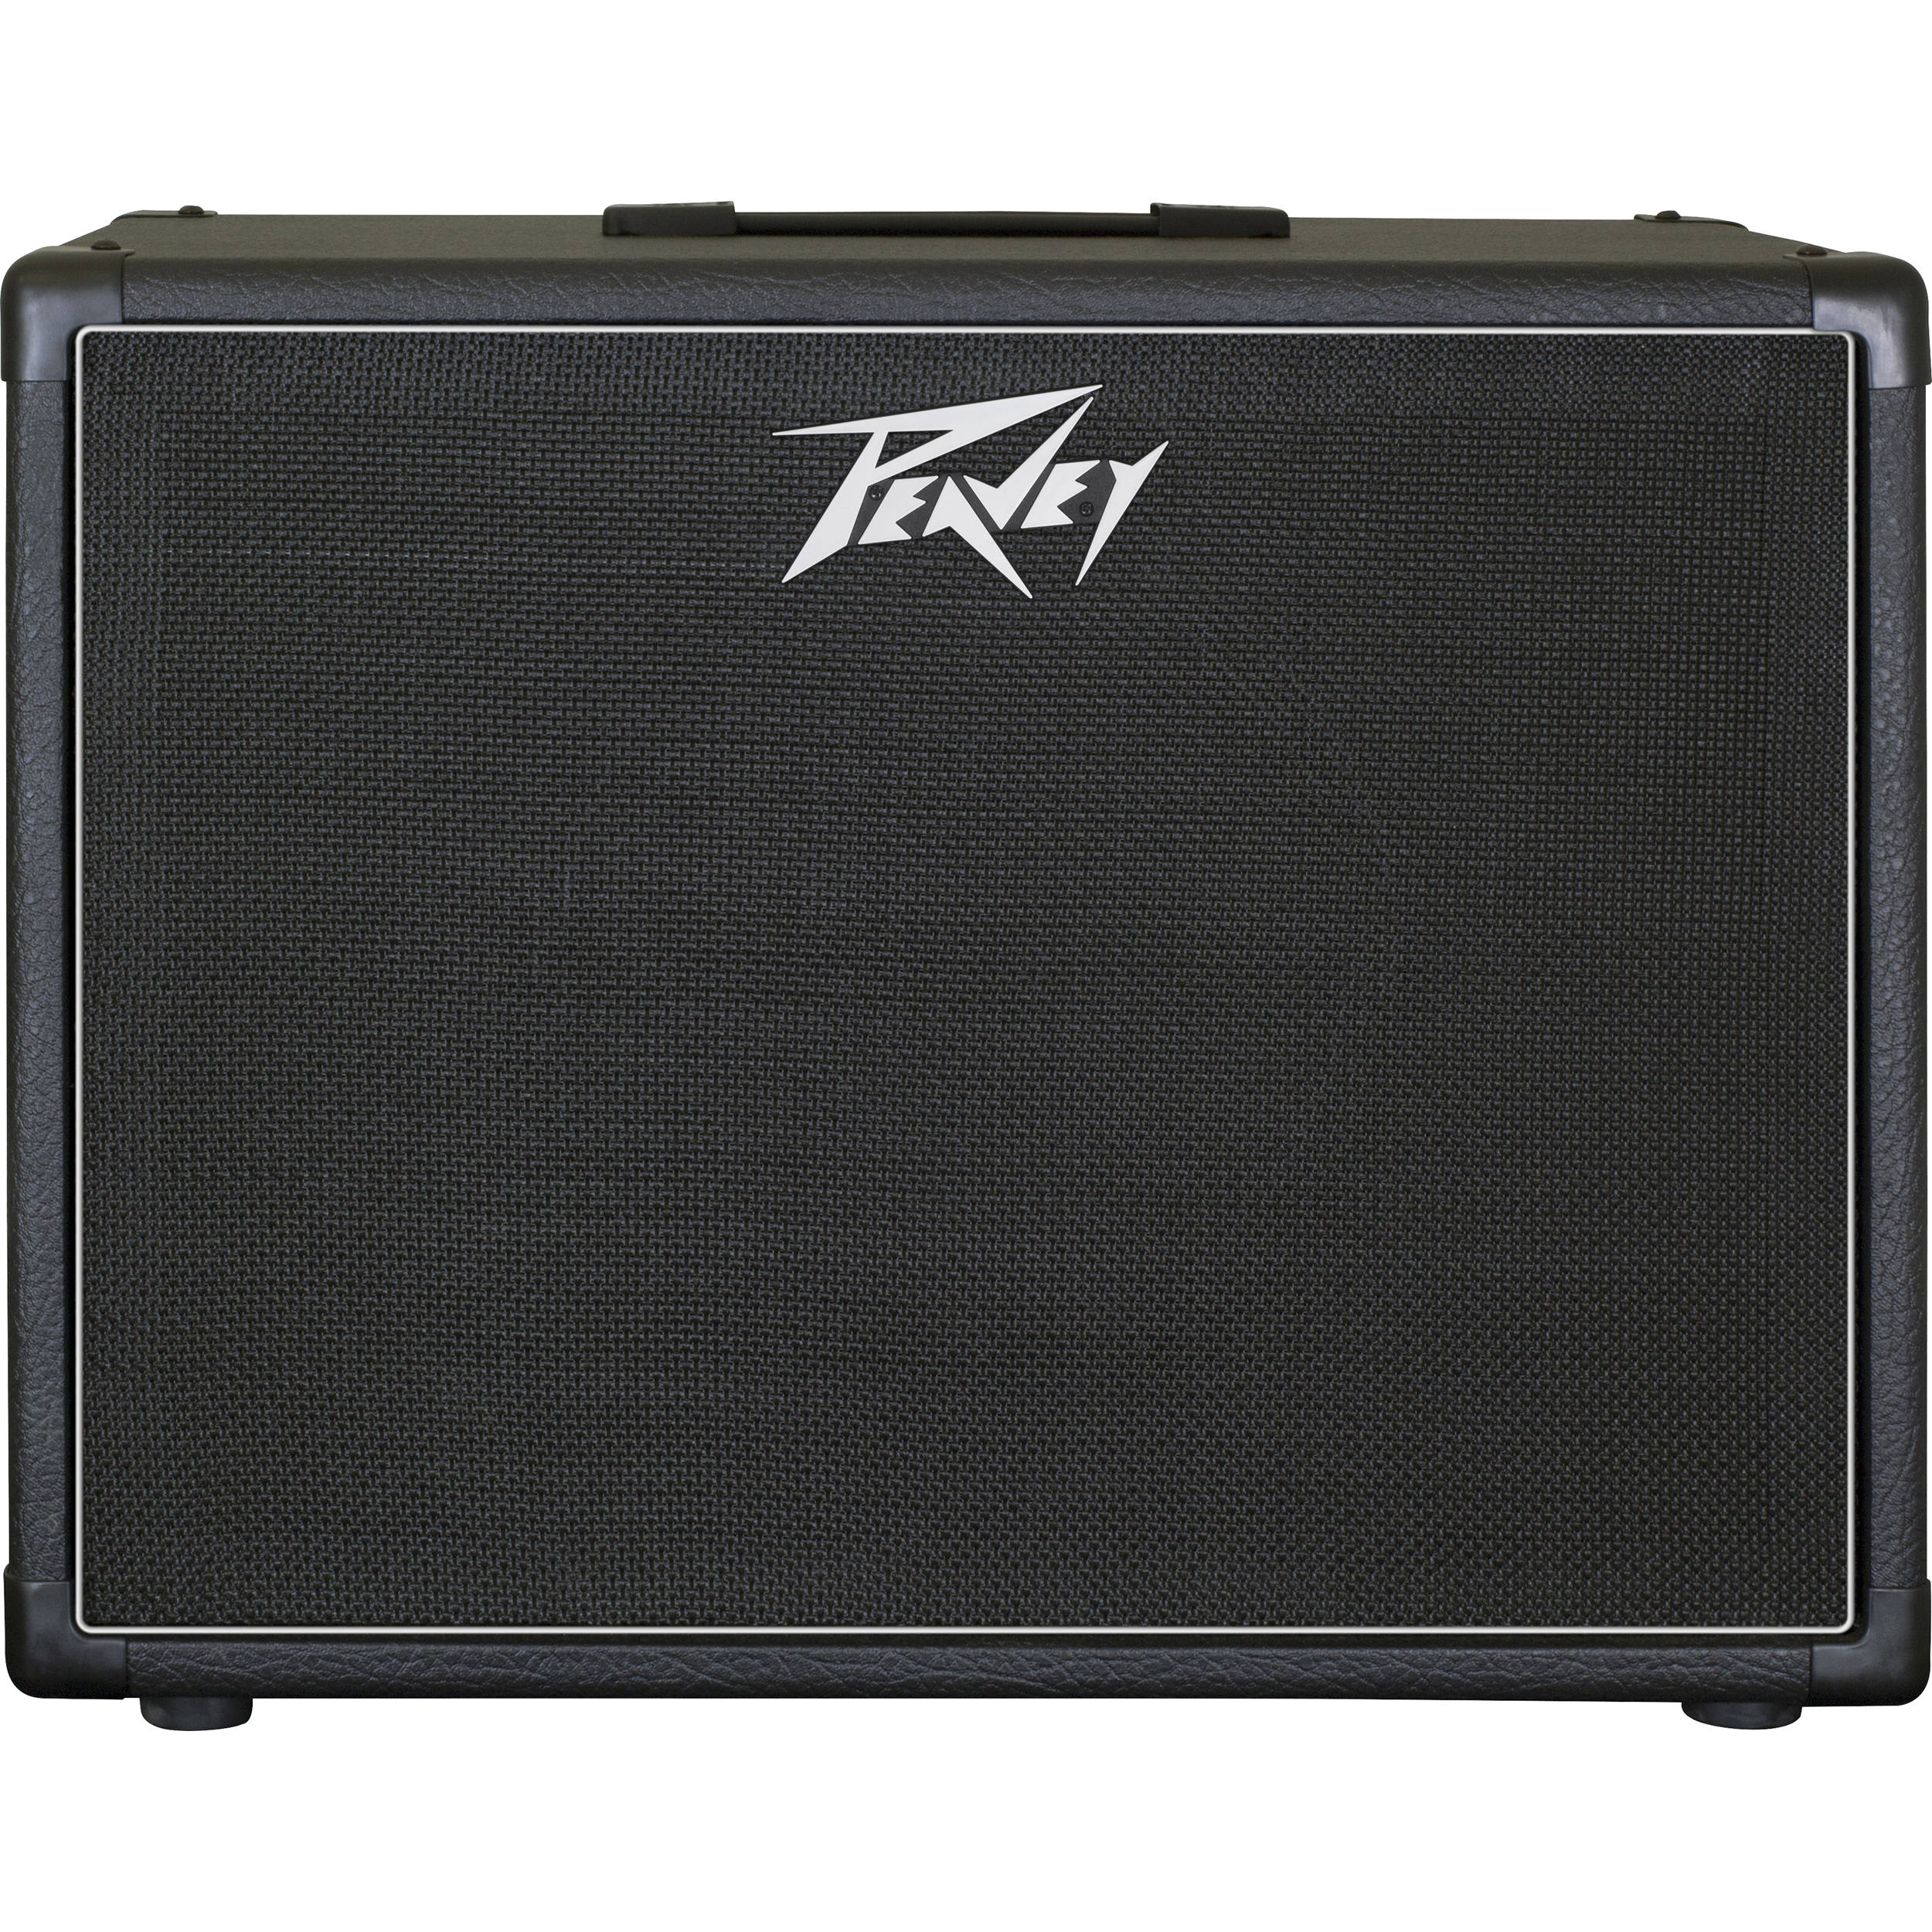 peavey 112 6 electric guitar cab single 12 speaker cabinet w mic stand cable ebay. Black Bedroom Furniture Sets. Home Design Ideas